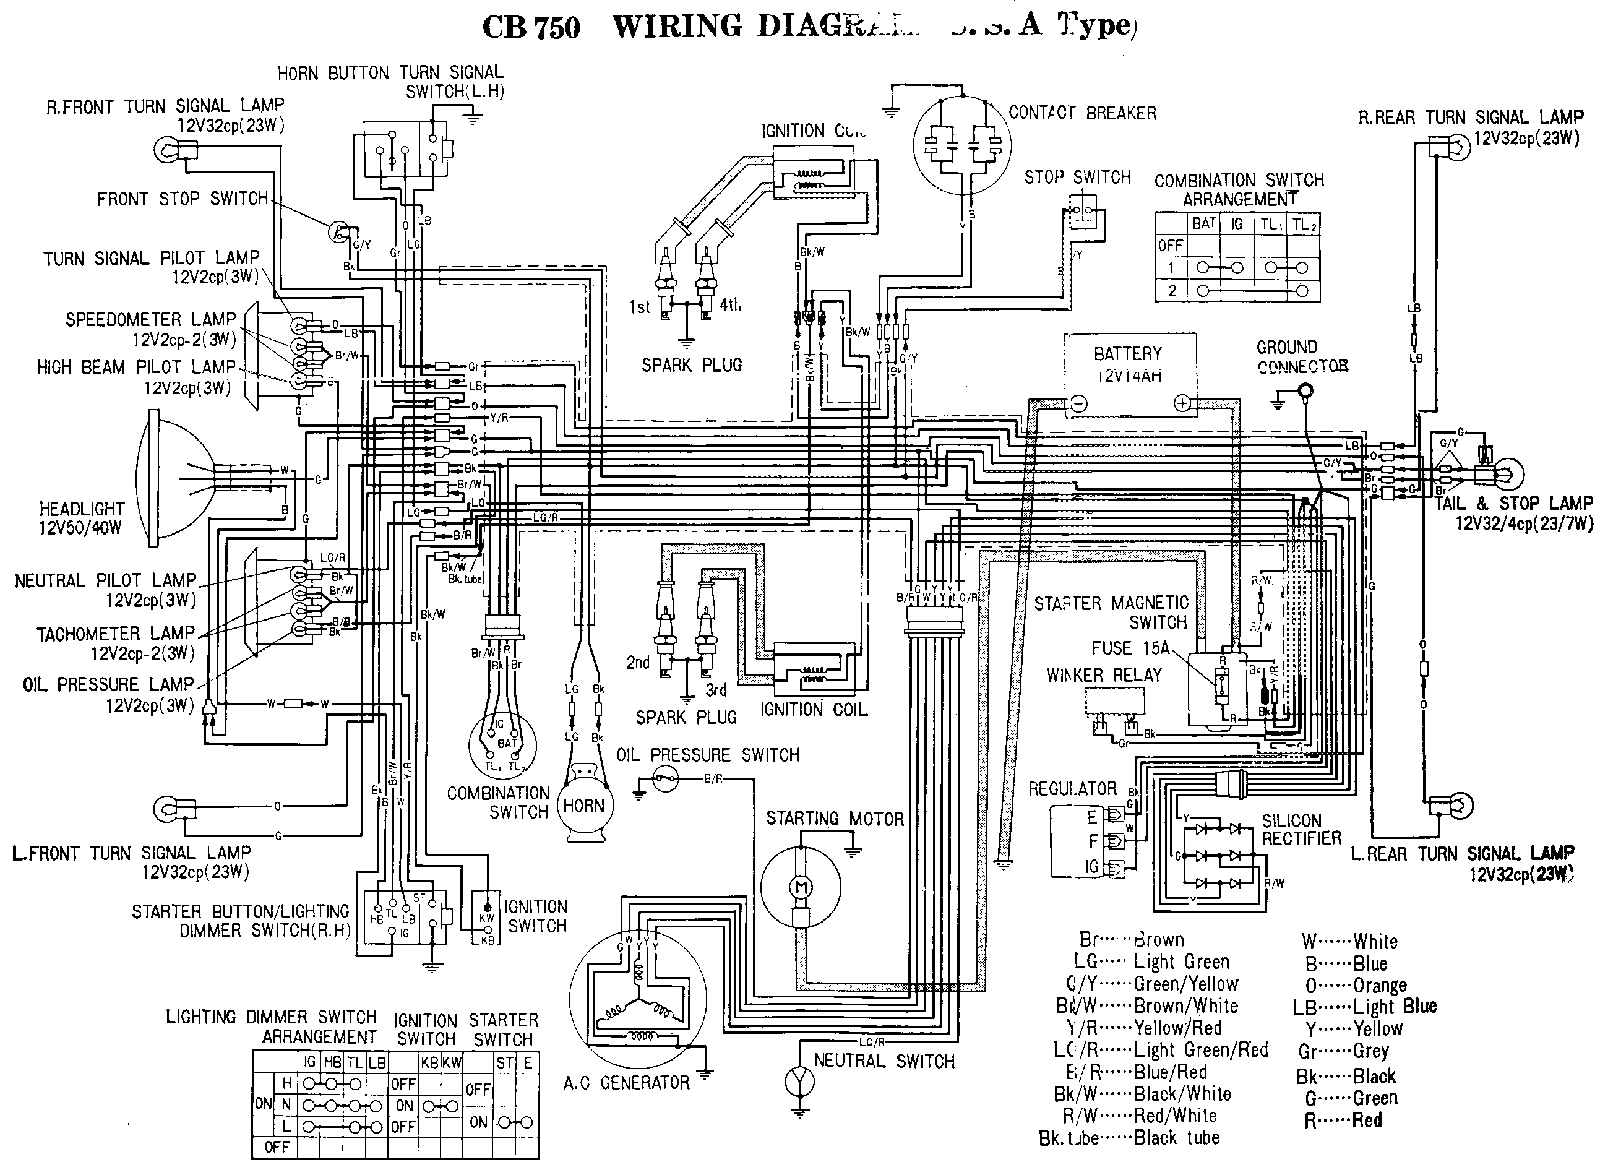 1976 Cb 750 Wiring Diagram